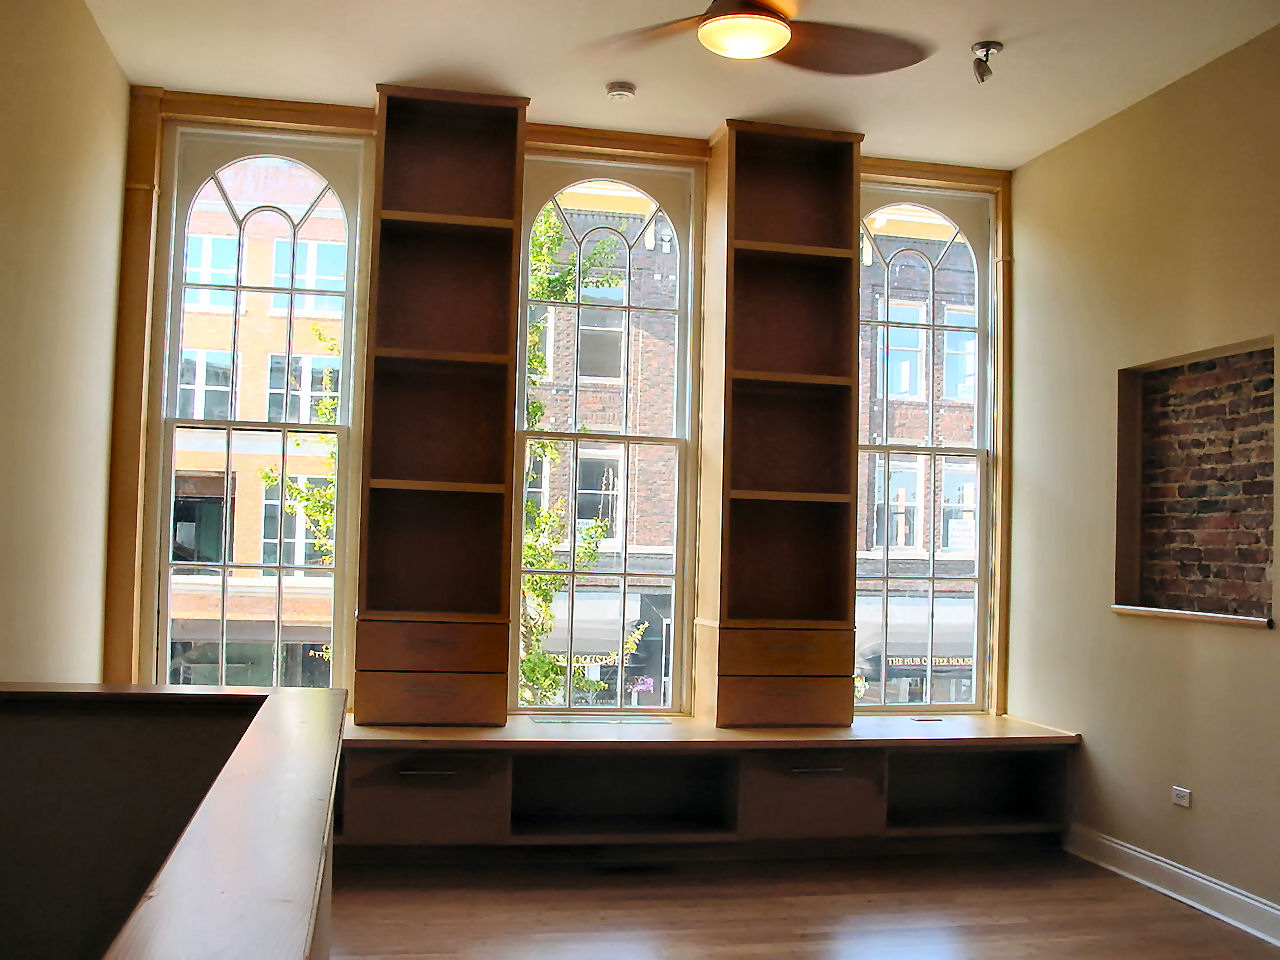 Bookcase and Benchseat - Bookcase & Bench Seat For Loft Apartment